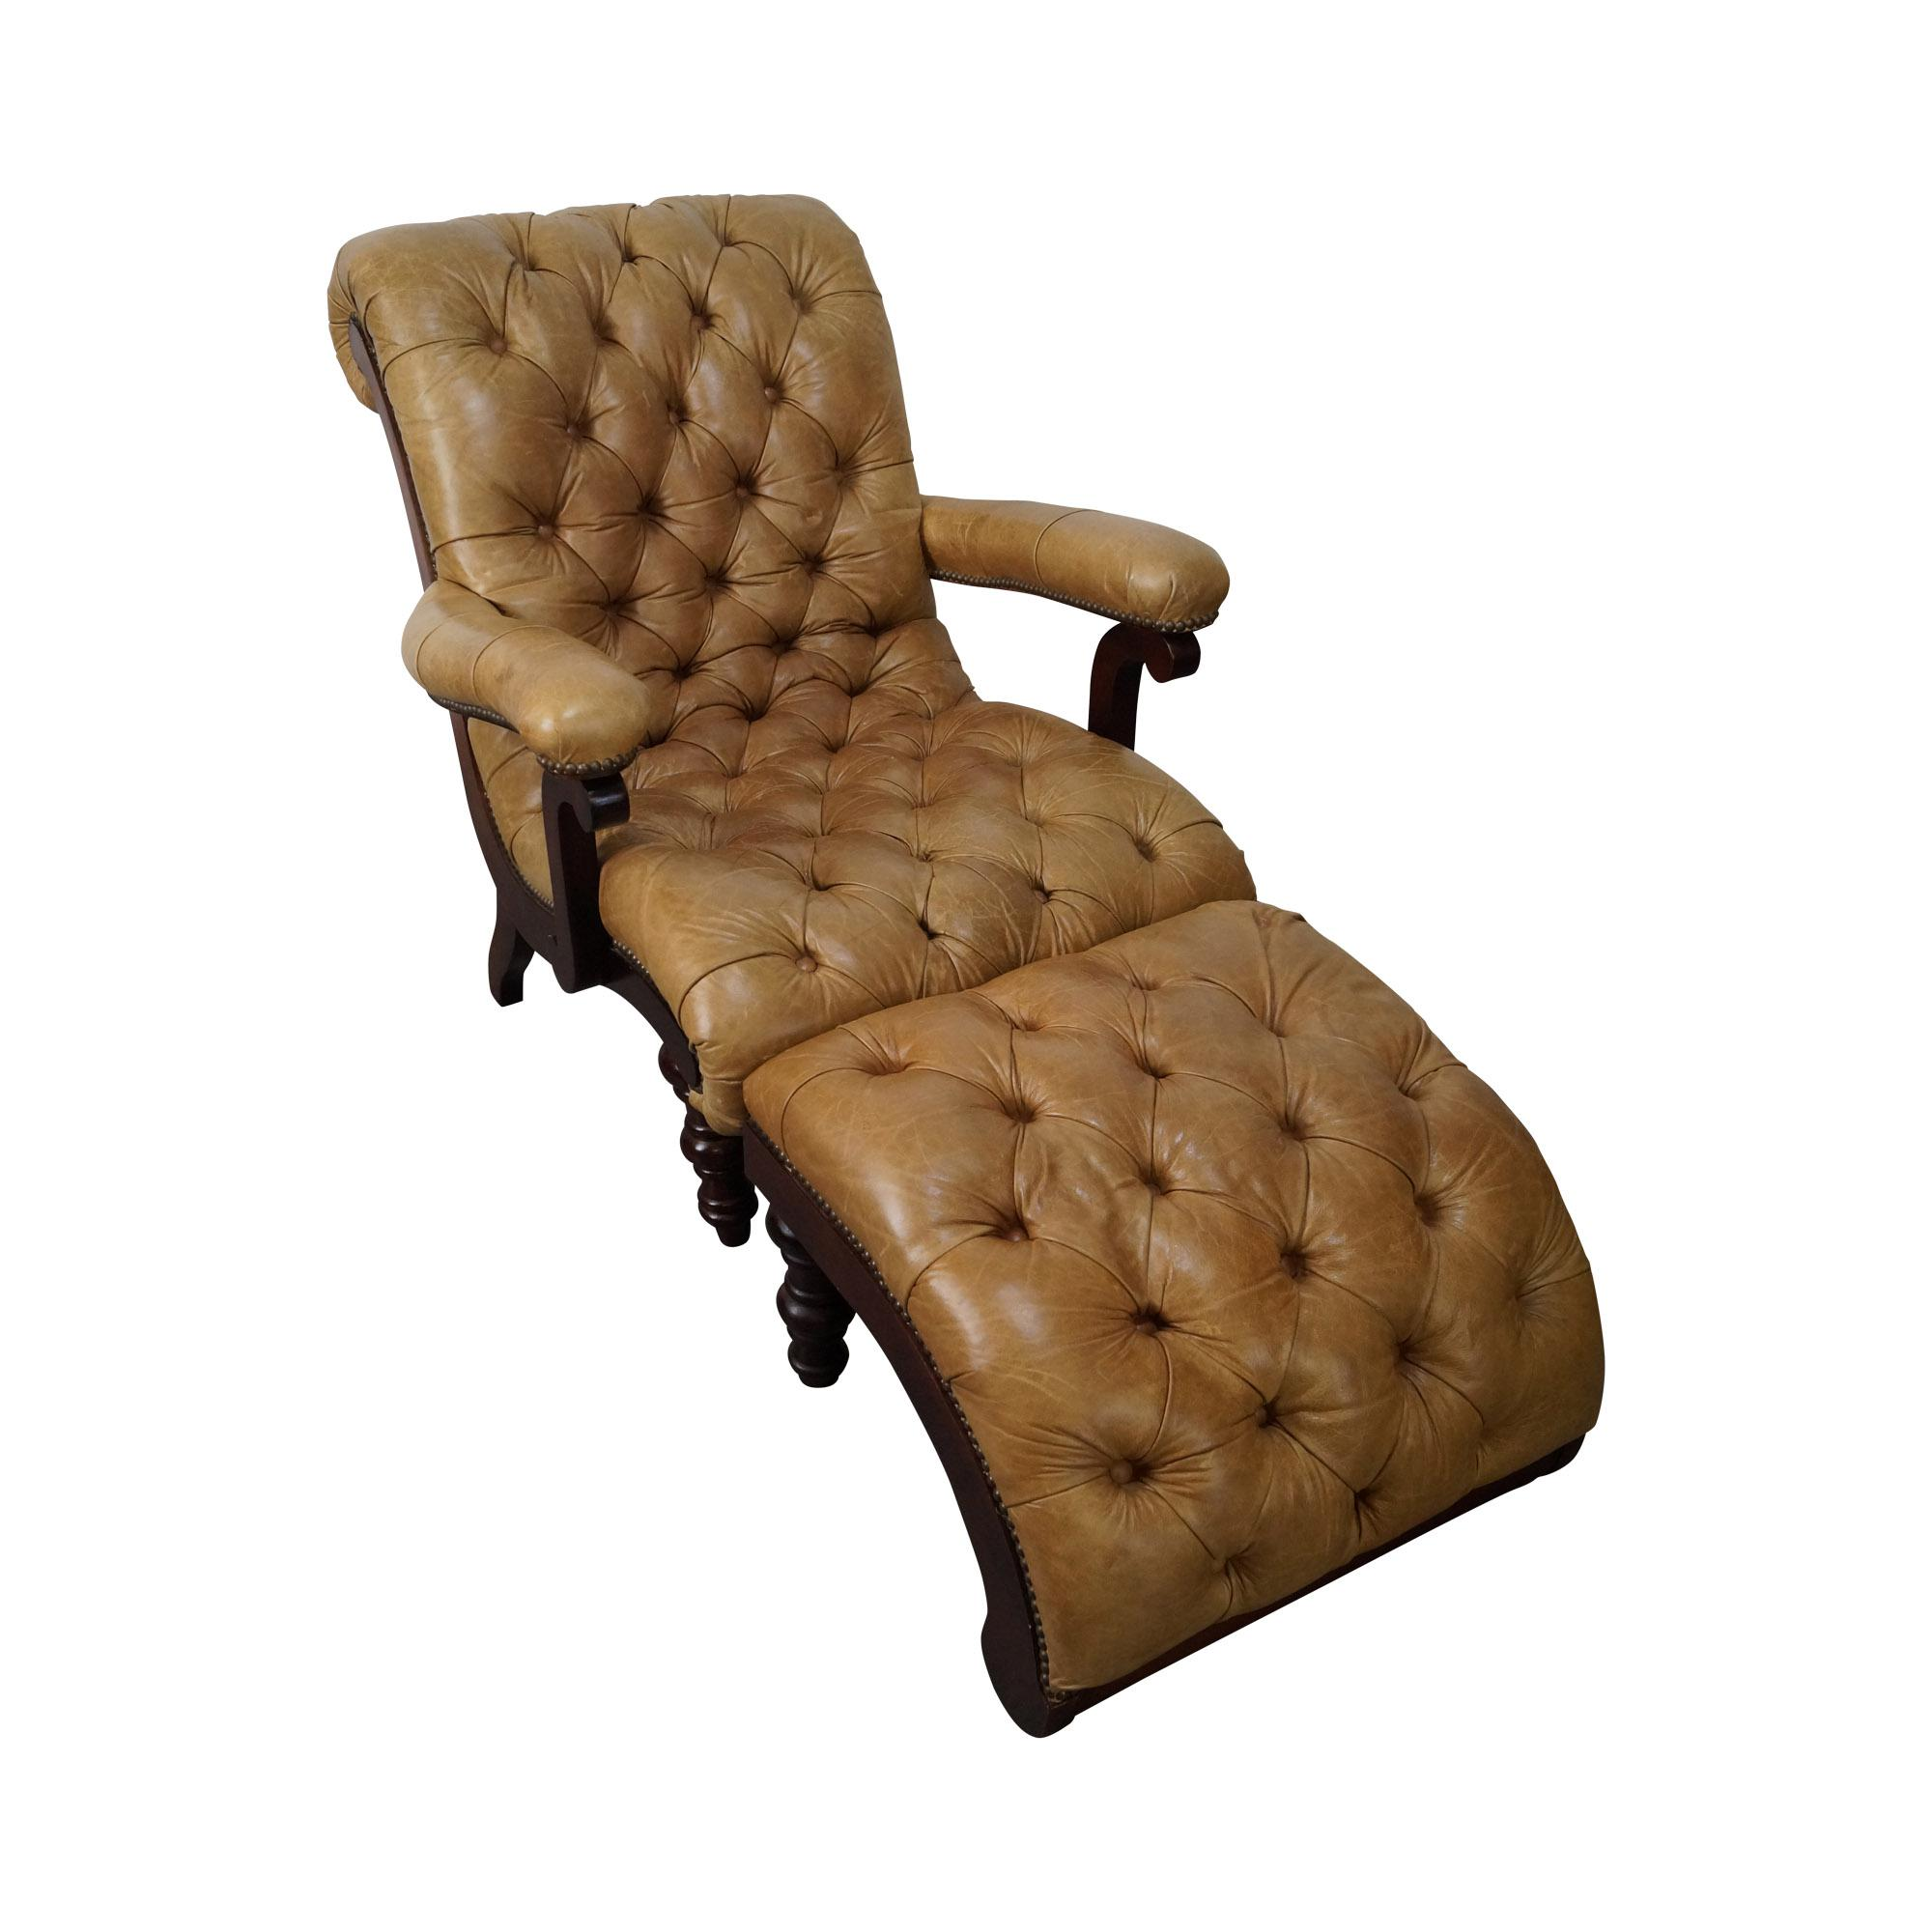 leather tufted chair and ottoman posture support desk chaise lounge with chairish